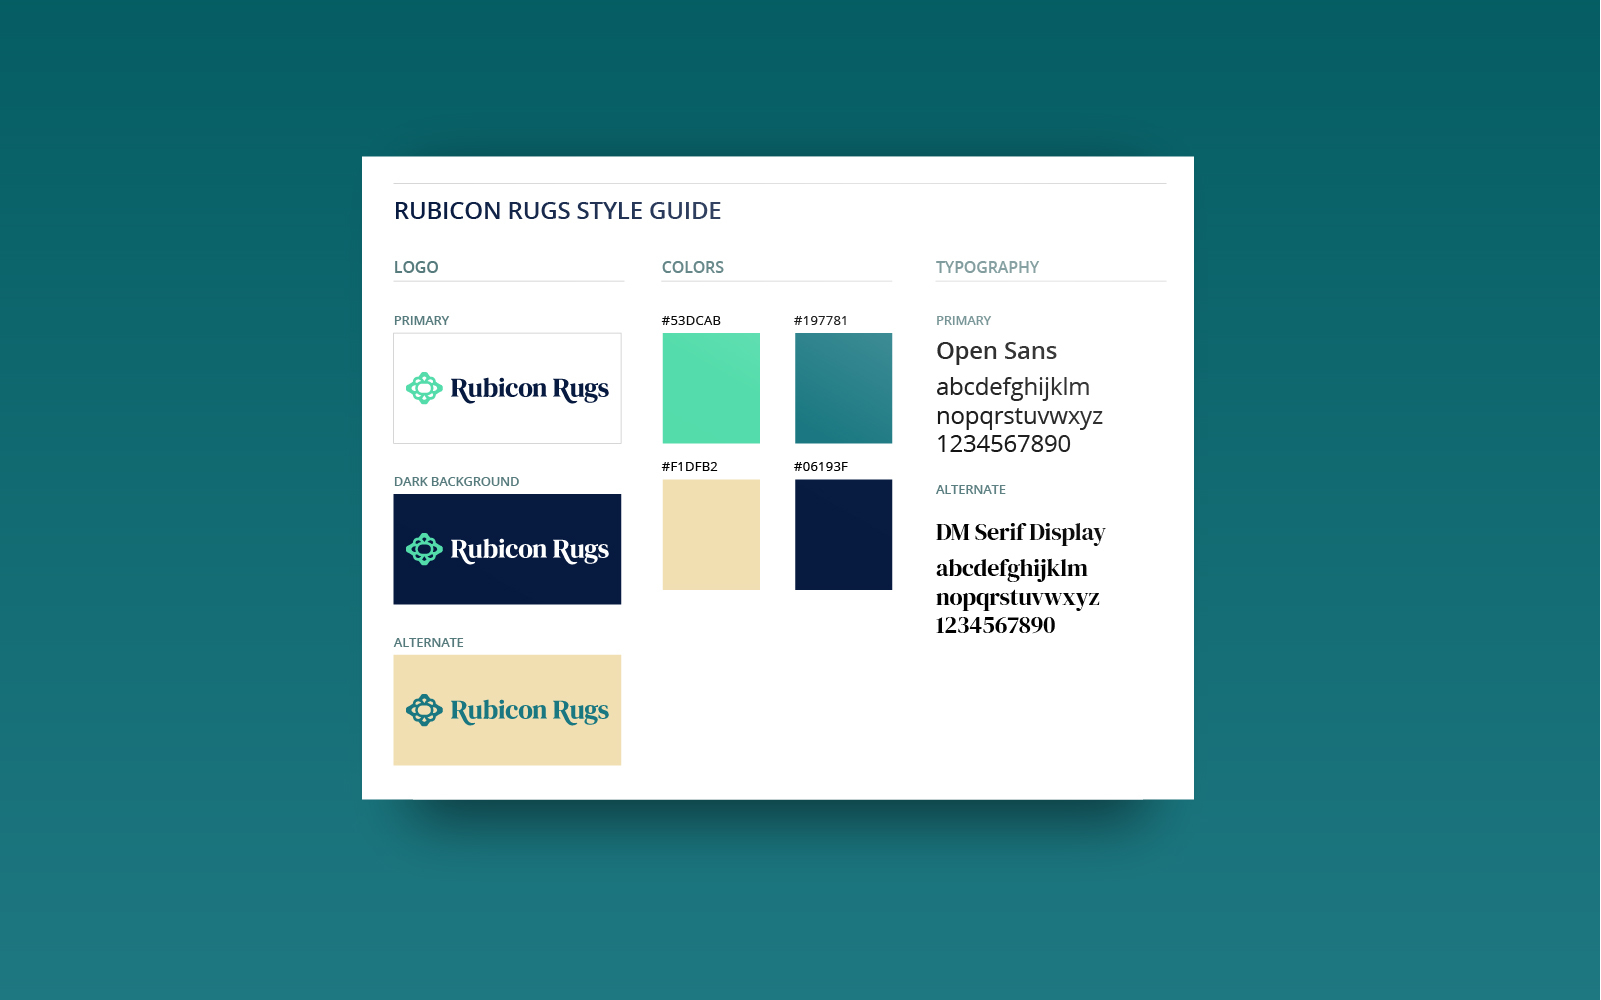 Rubicon Rugs Logo and Branding Style Guide